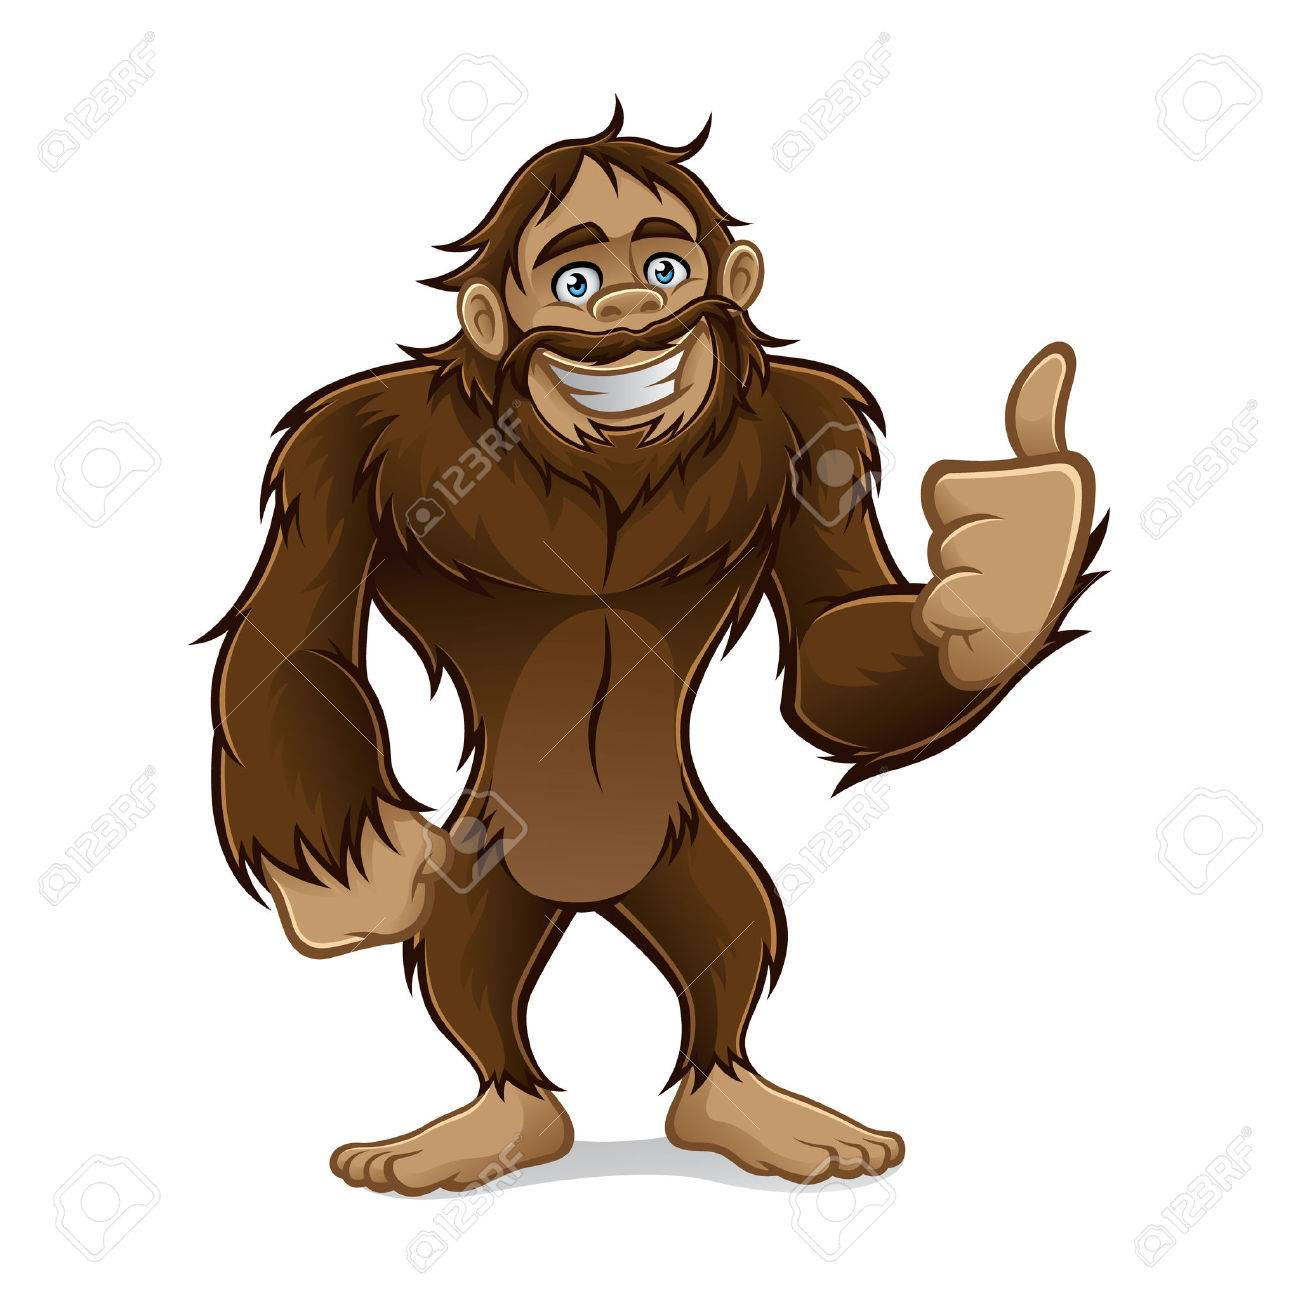 2 899 bigfoot cliparts stock vector and royalty free bigfoot rh 123rf com bigfoot clipart free bigfoot clipart pictures